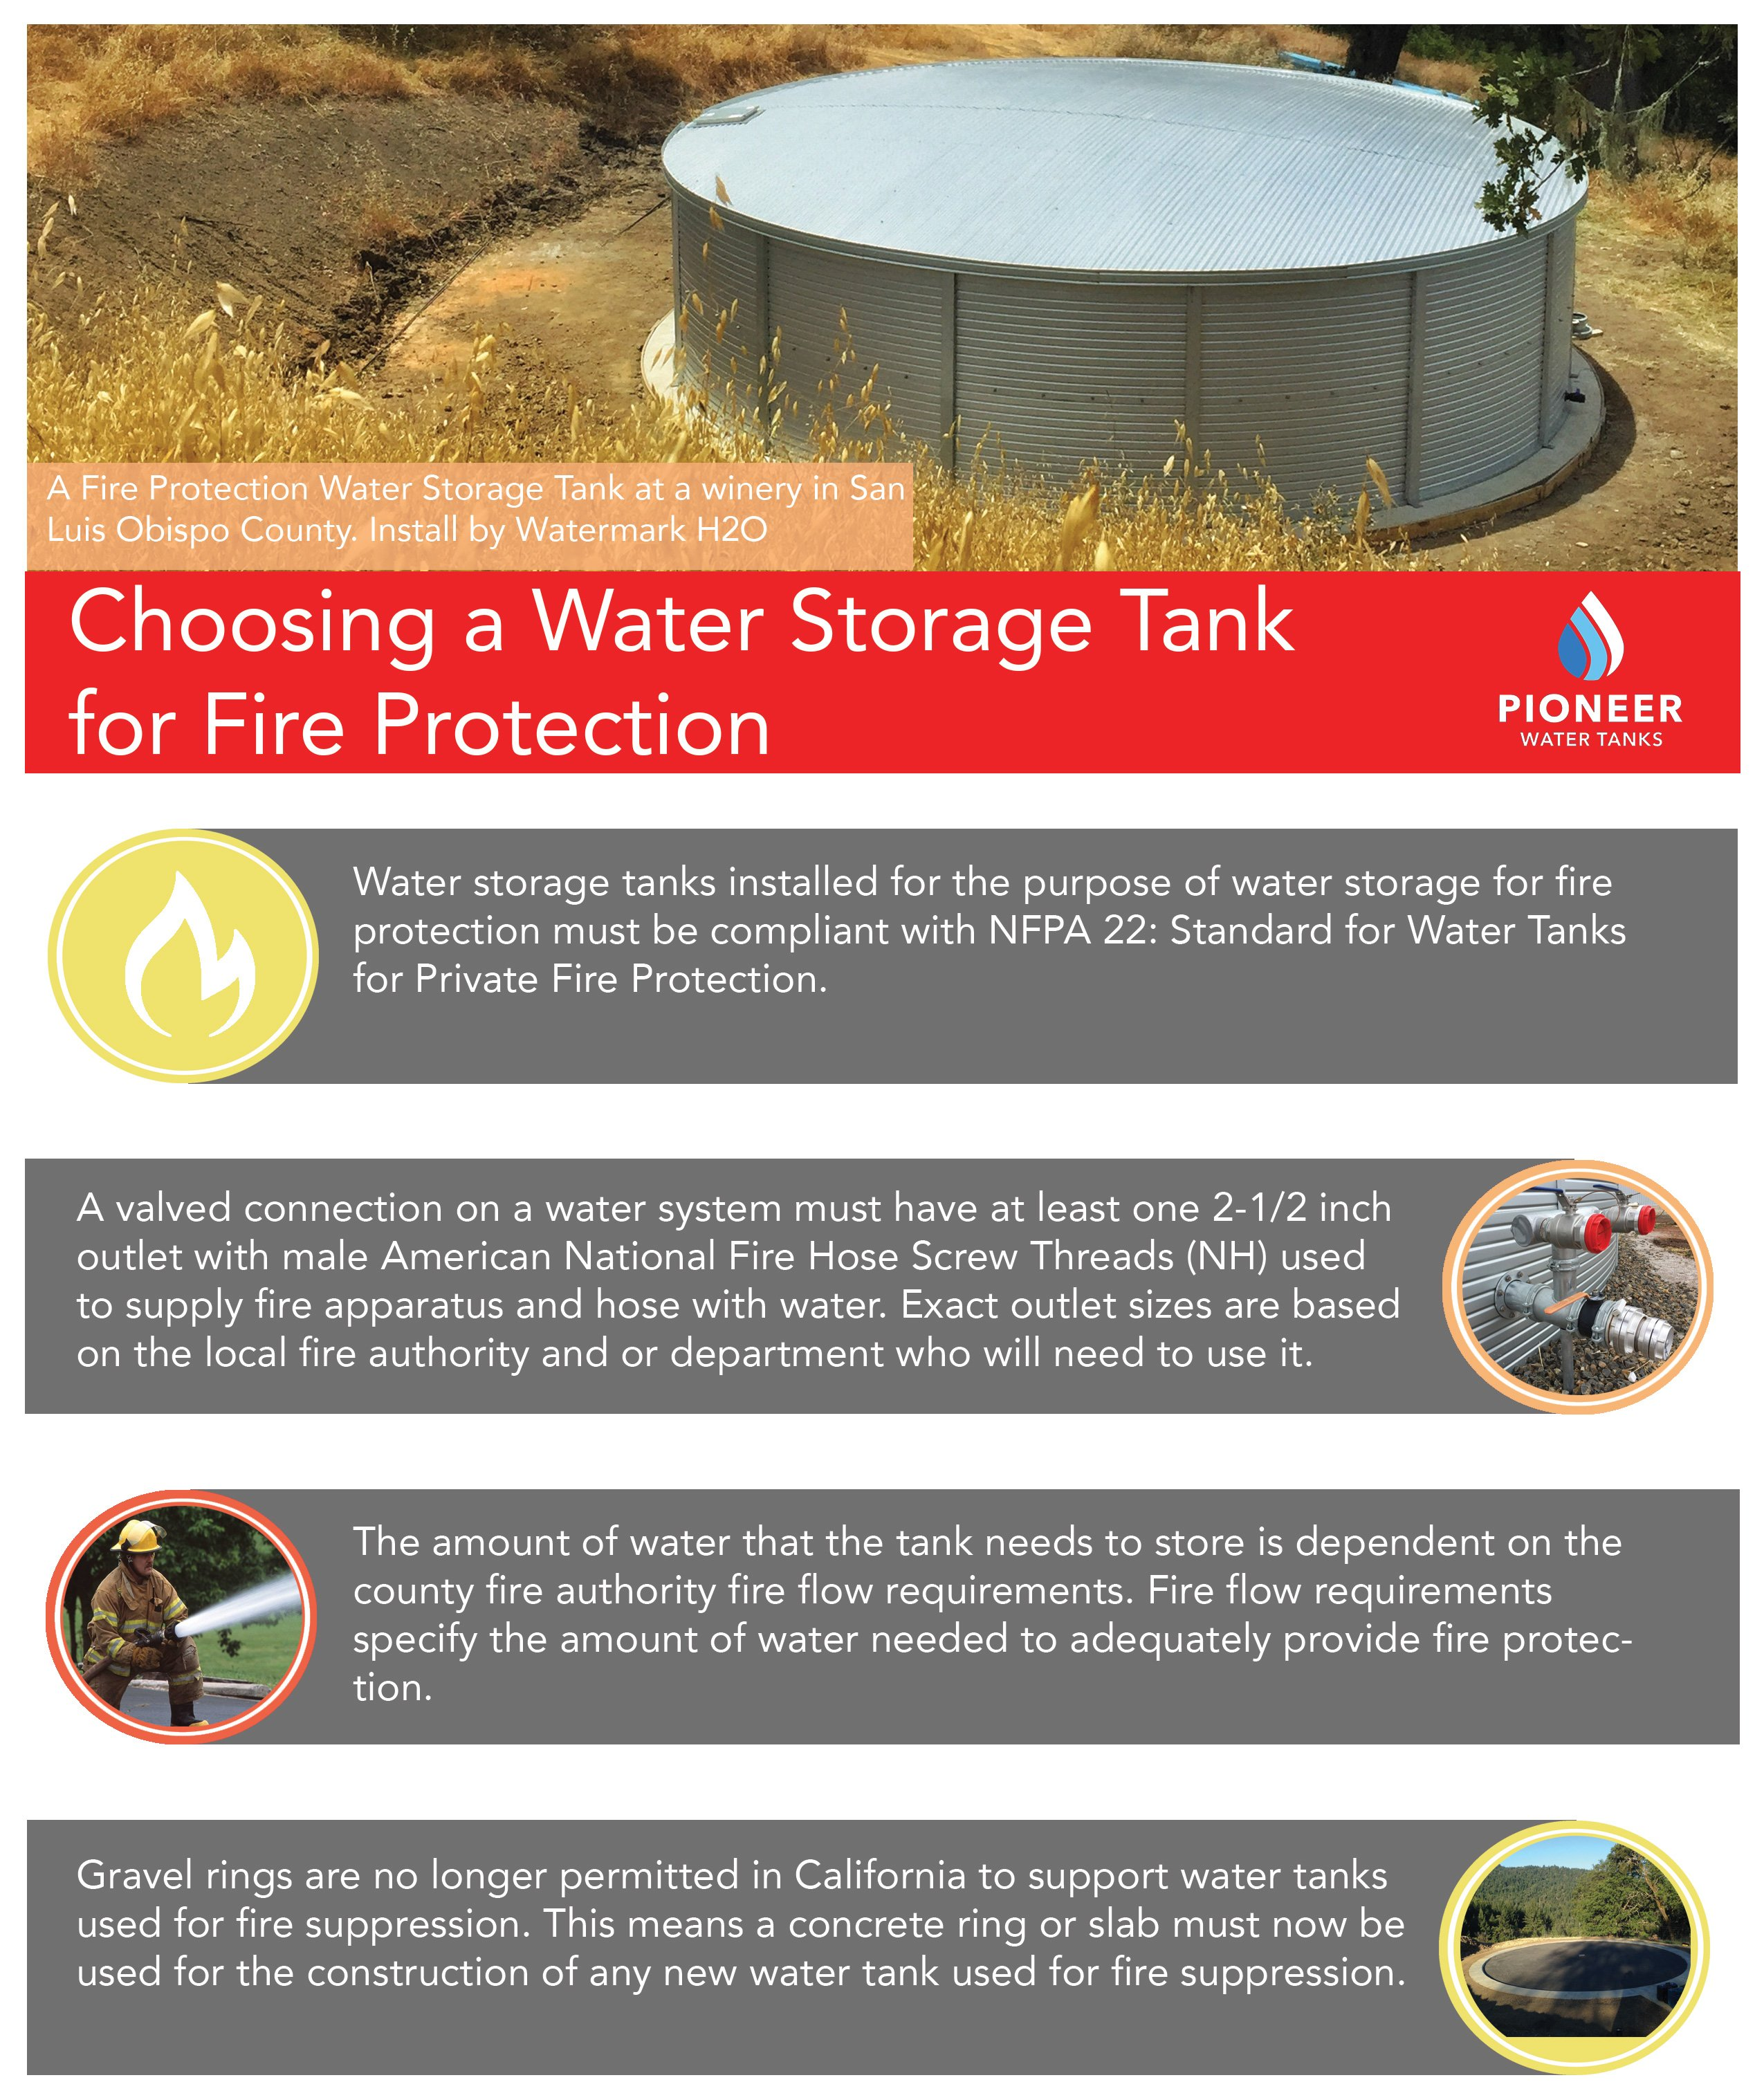 California fire protection water tanks with Pioneer